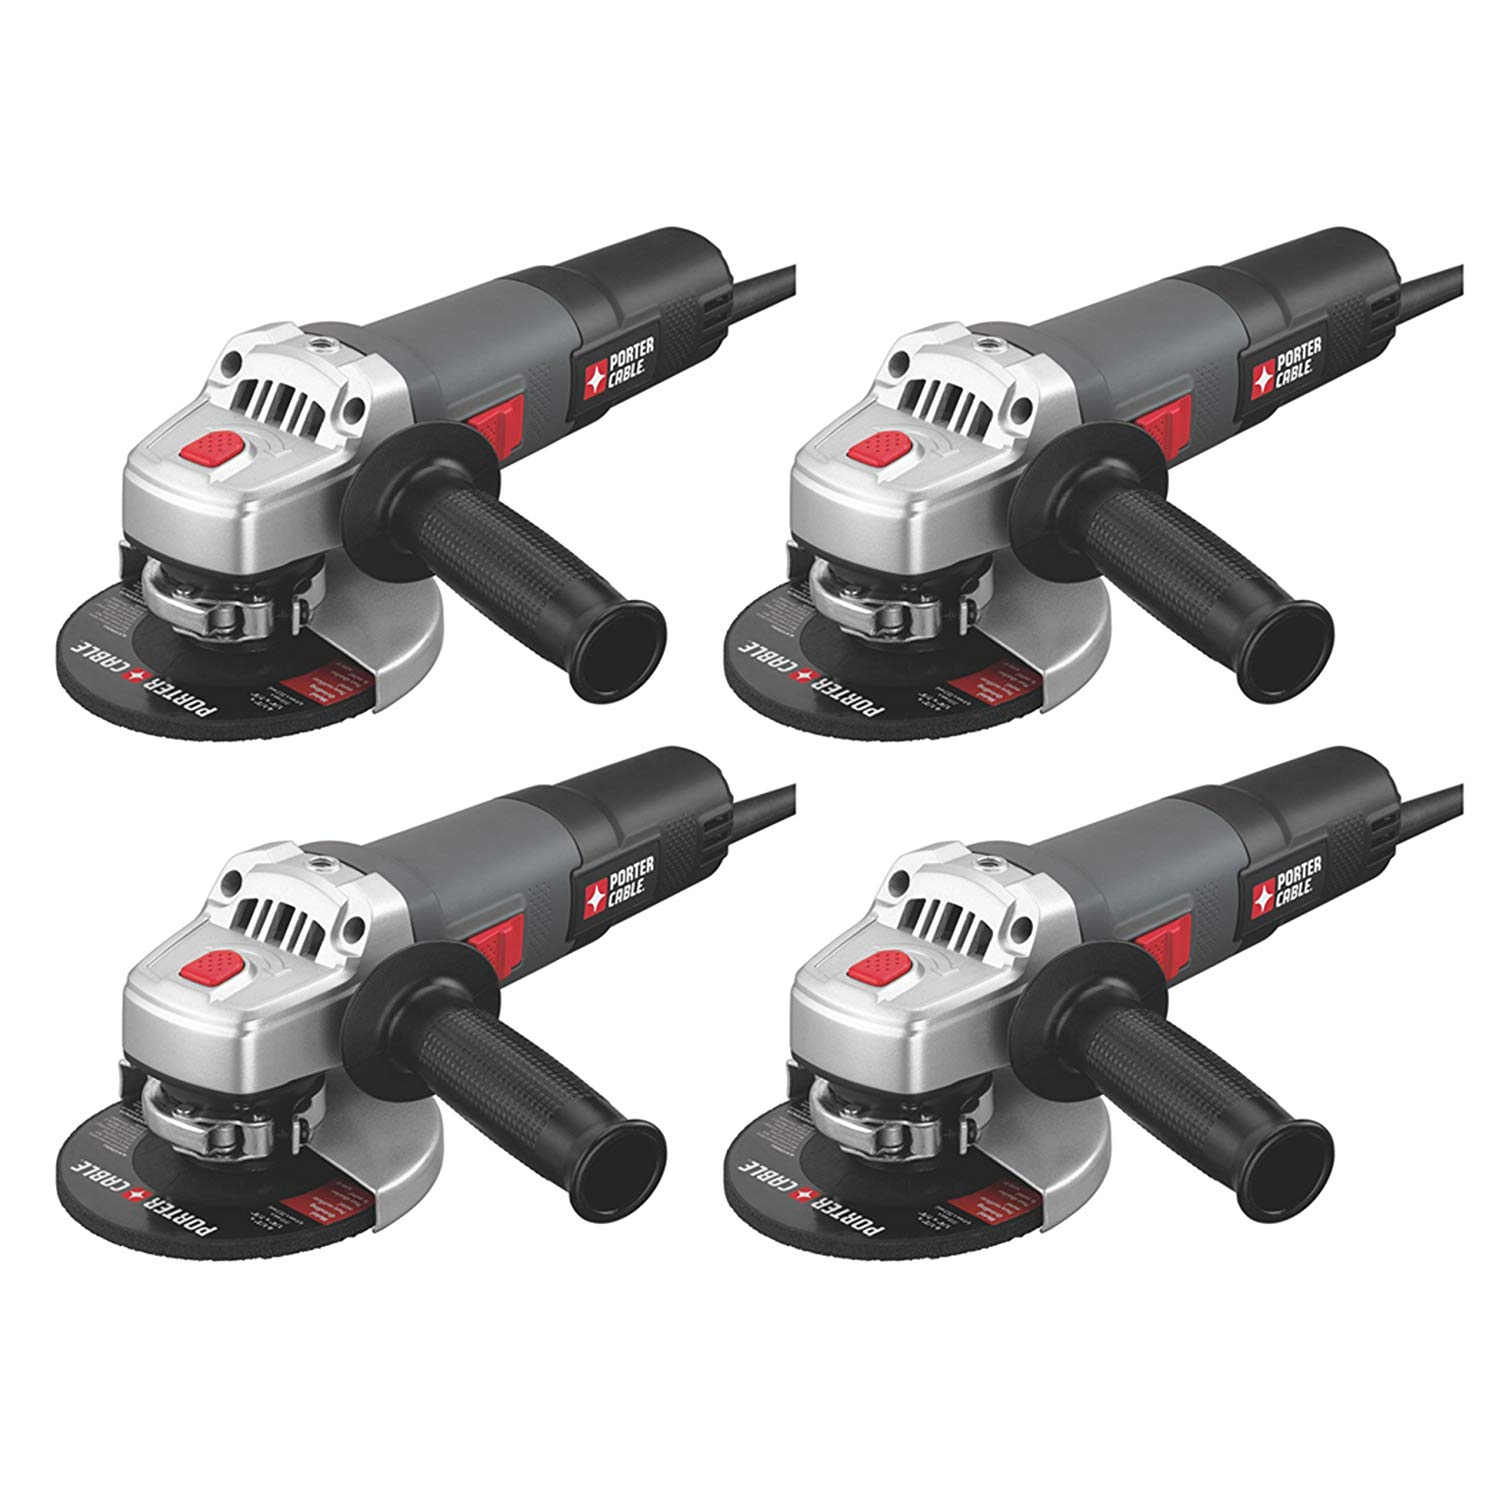 Porter Cable PC60TAG 4-1/2 6 Amp 11,000 RPM Corded Angle Grinder (4-Pack)